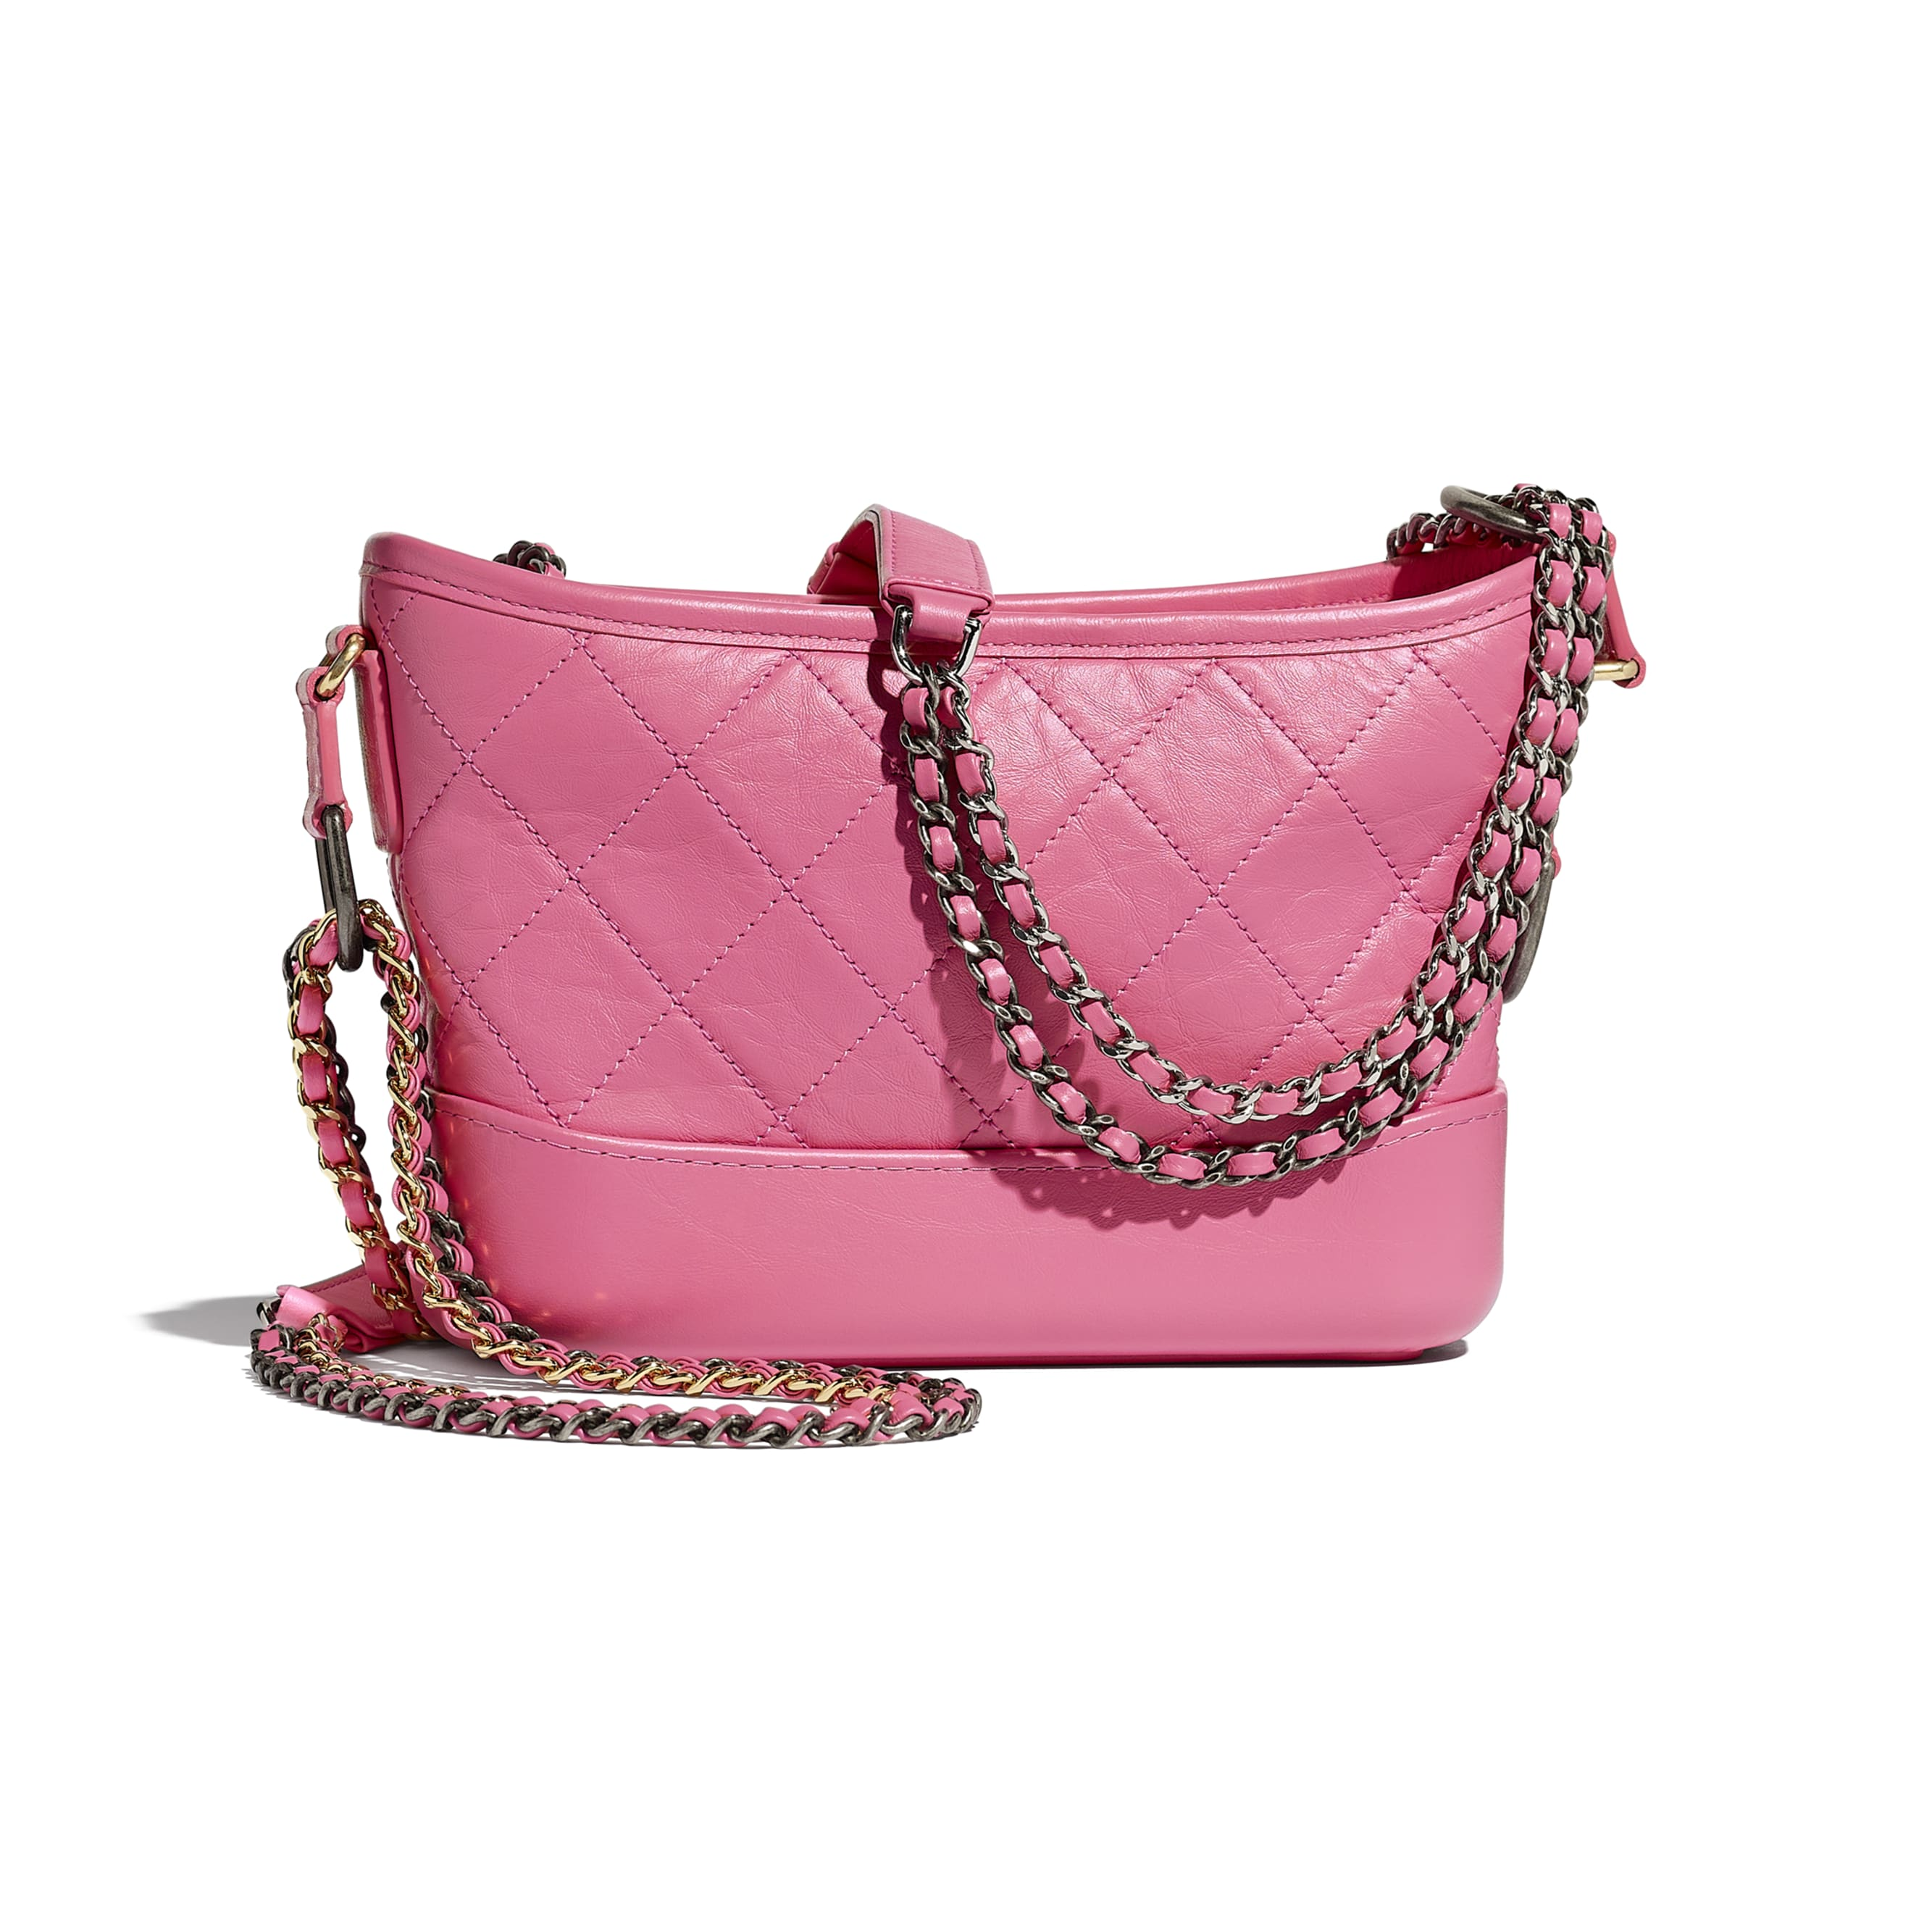 CHANEL'S GABRIELLE Small Hobo Bag - Pink - Aged Calfskin, Smooth Calfskin, Gold-Tone, Silver-Tone & Ruthenium-Finish Metal - CHANEL - Alternative view - see standard sized version